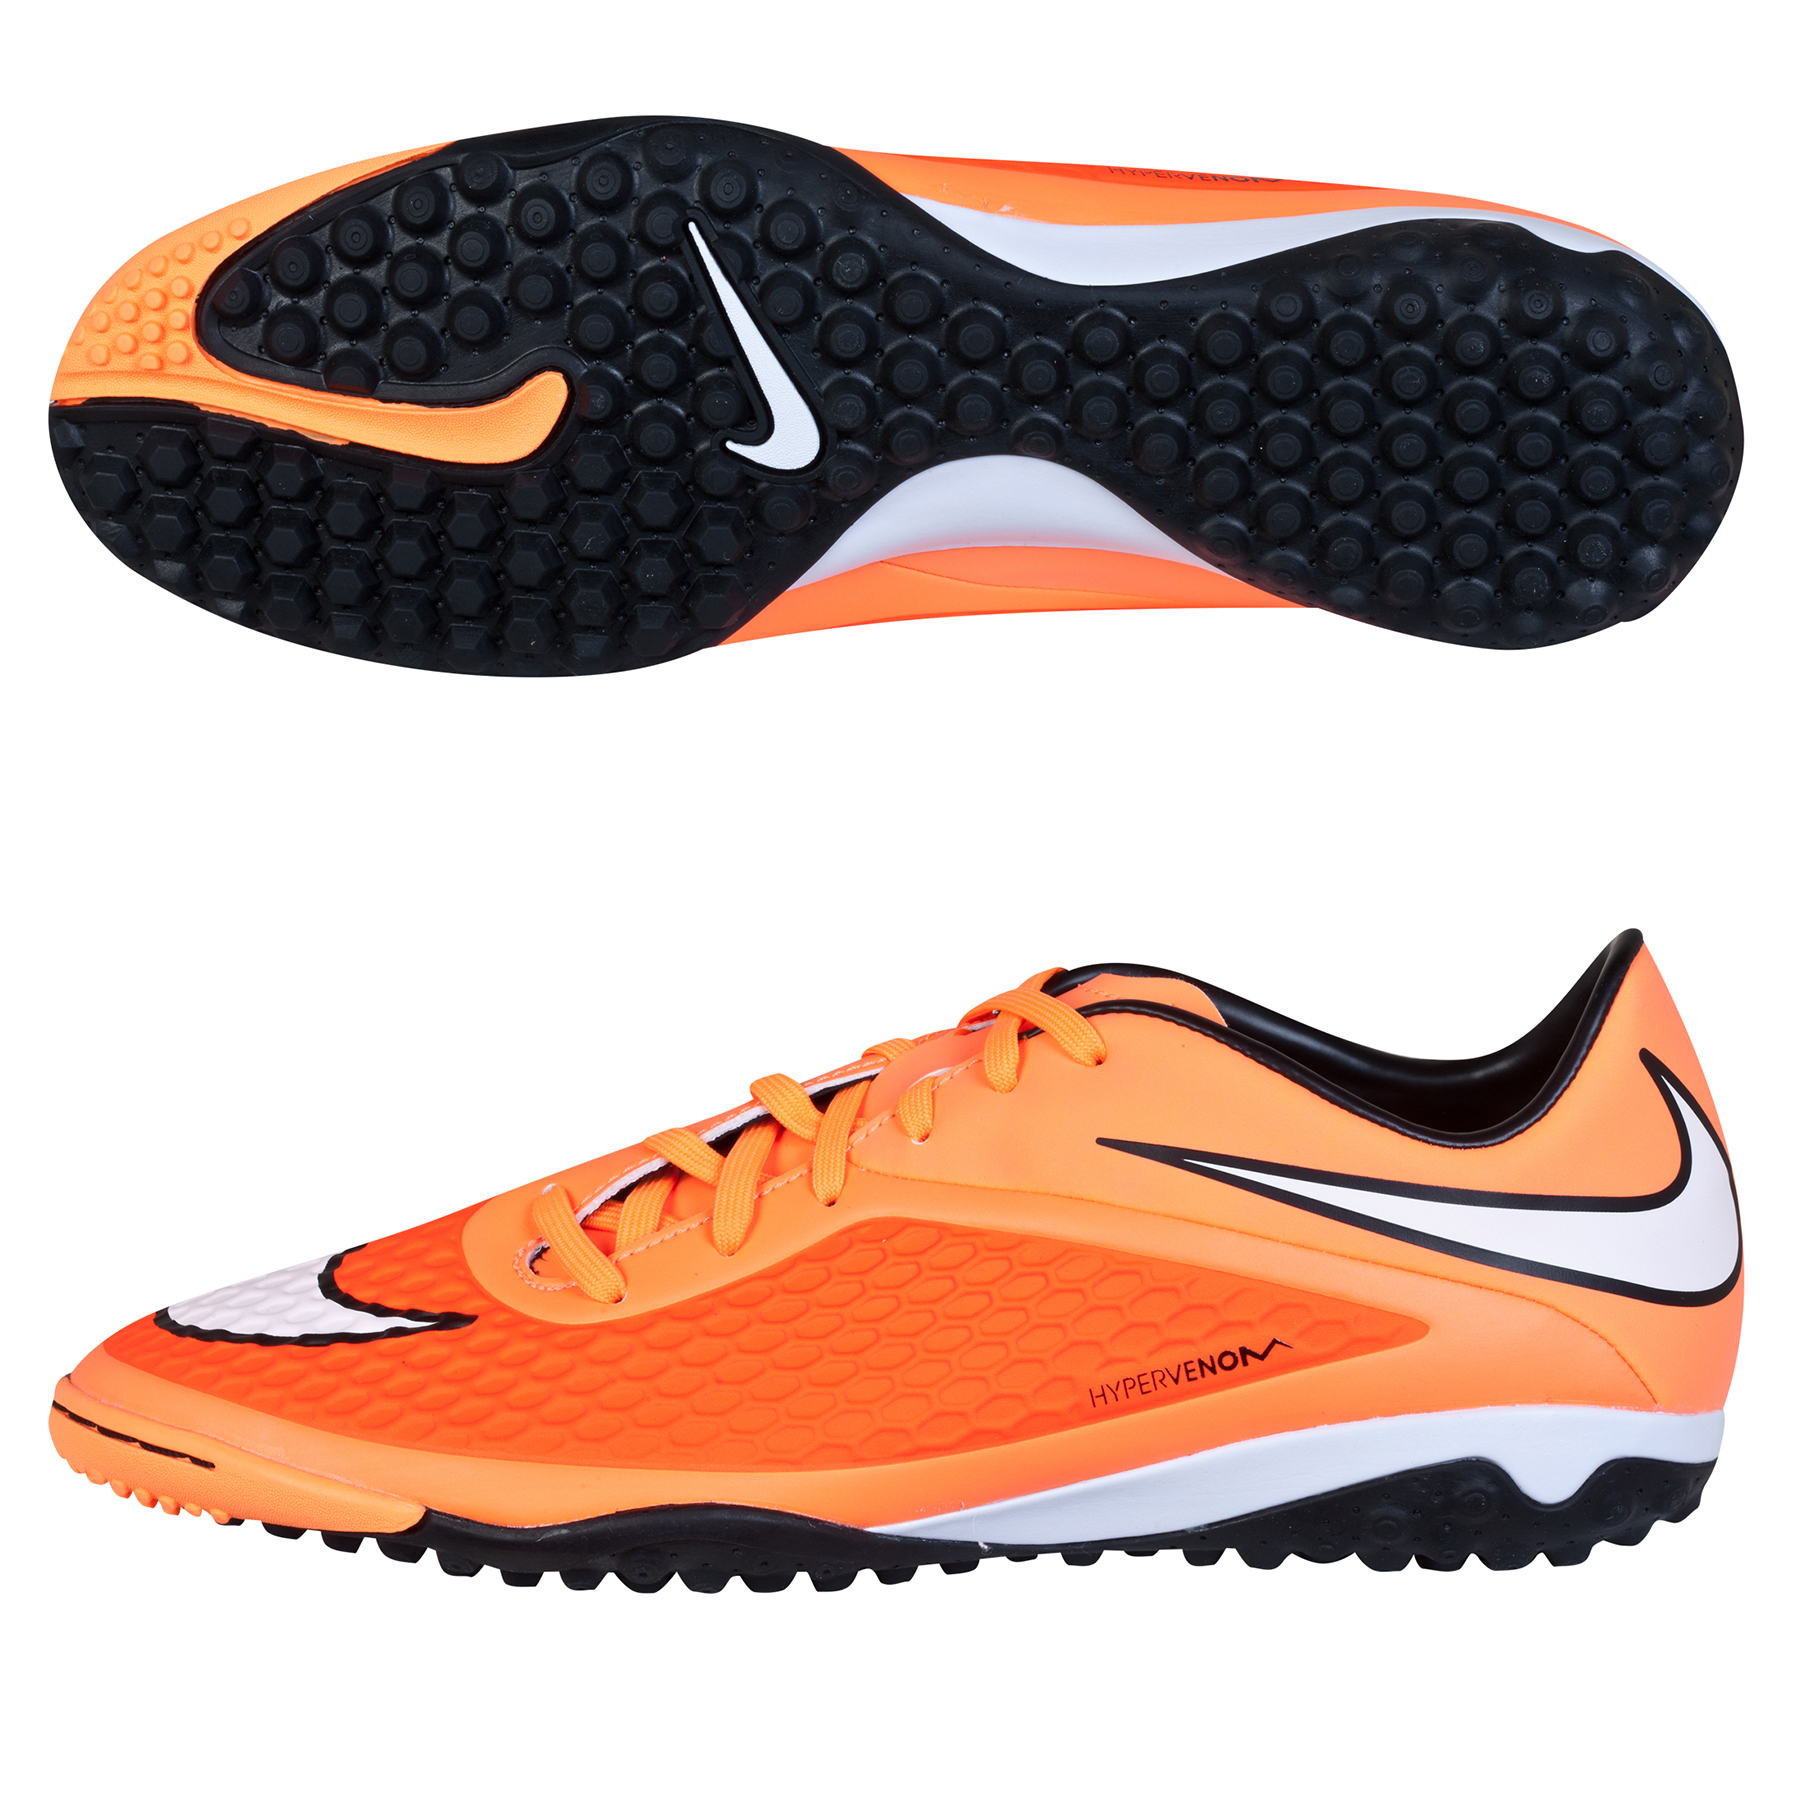 Nike Hypervenom Phelon Astroturf Trainers Orange